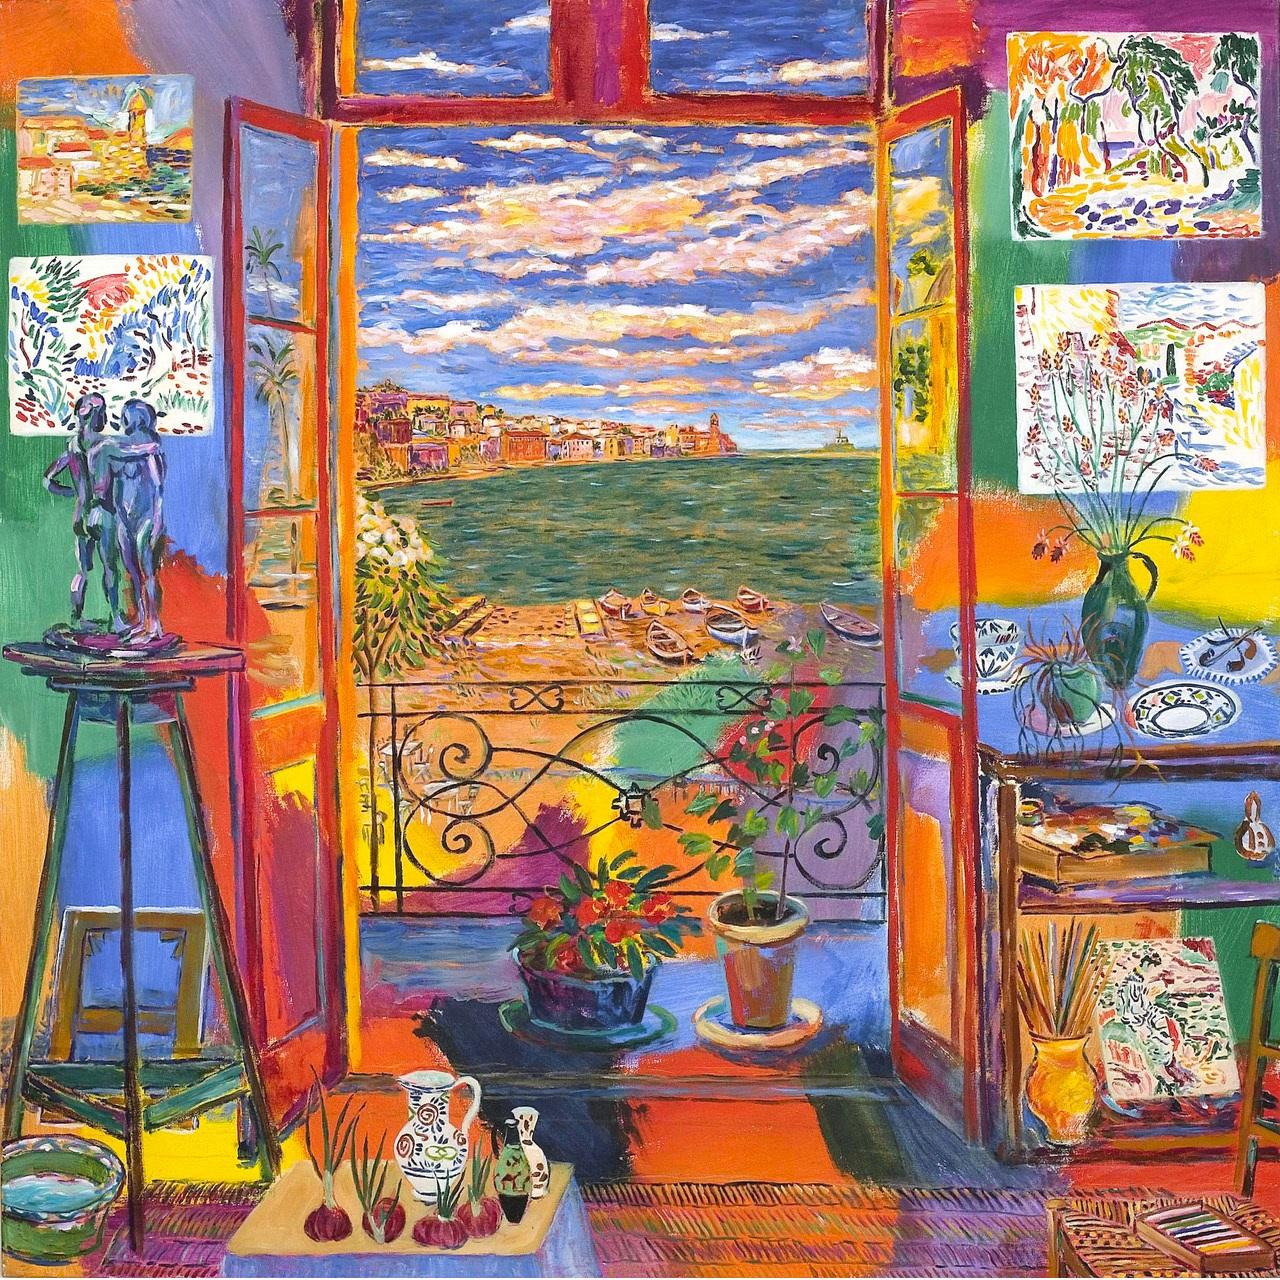 Best Print Canvas Matisse's Studio in Collioure l large print With Size 30 x 30 in (76 x76 cm) From UK